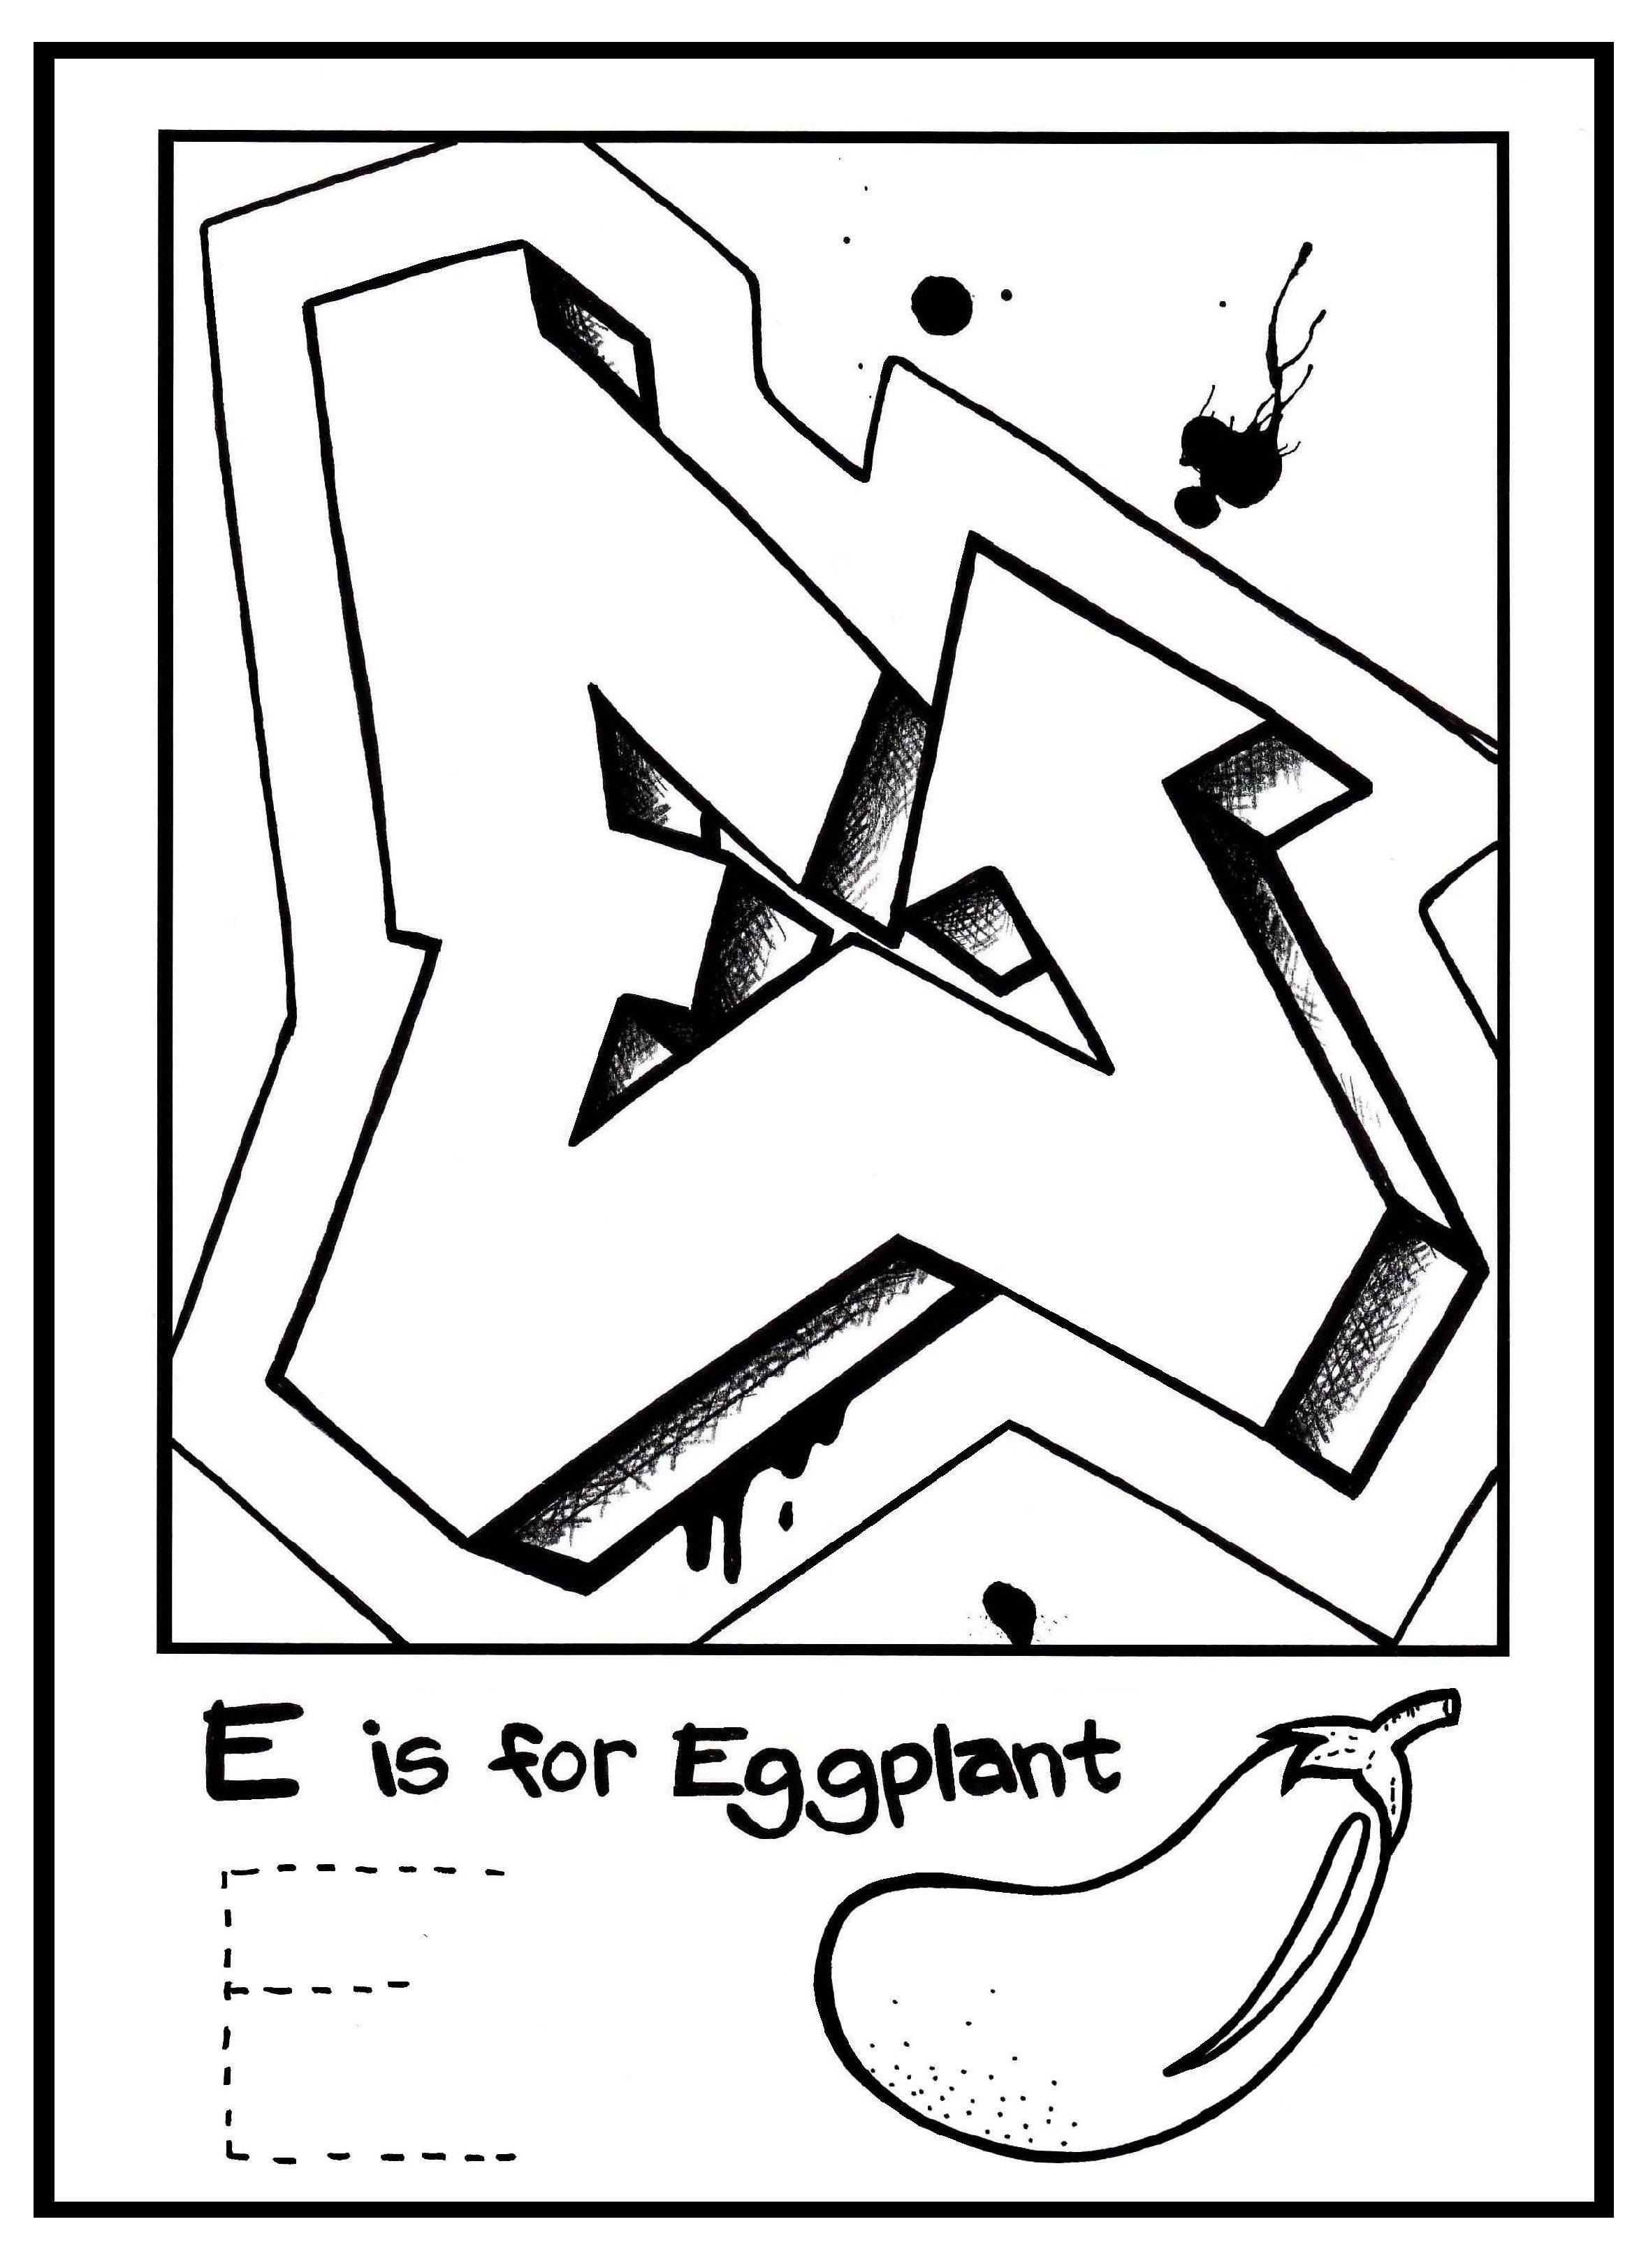 Graffiti art coloring pages - G Is For Graffiti Alphabet Coloring Book Free Coloring Page Learn To Draw Graffiti